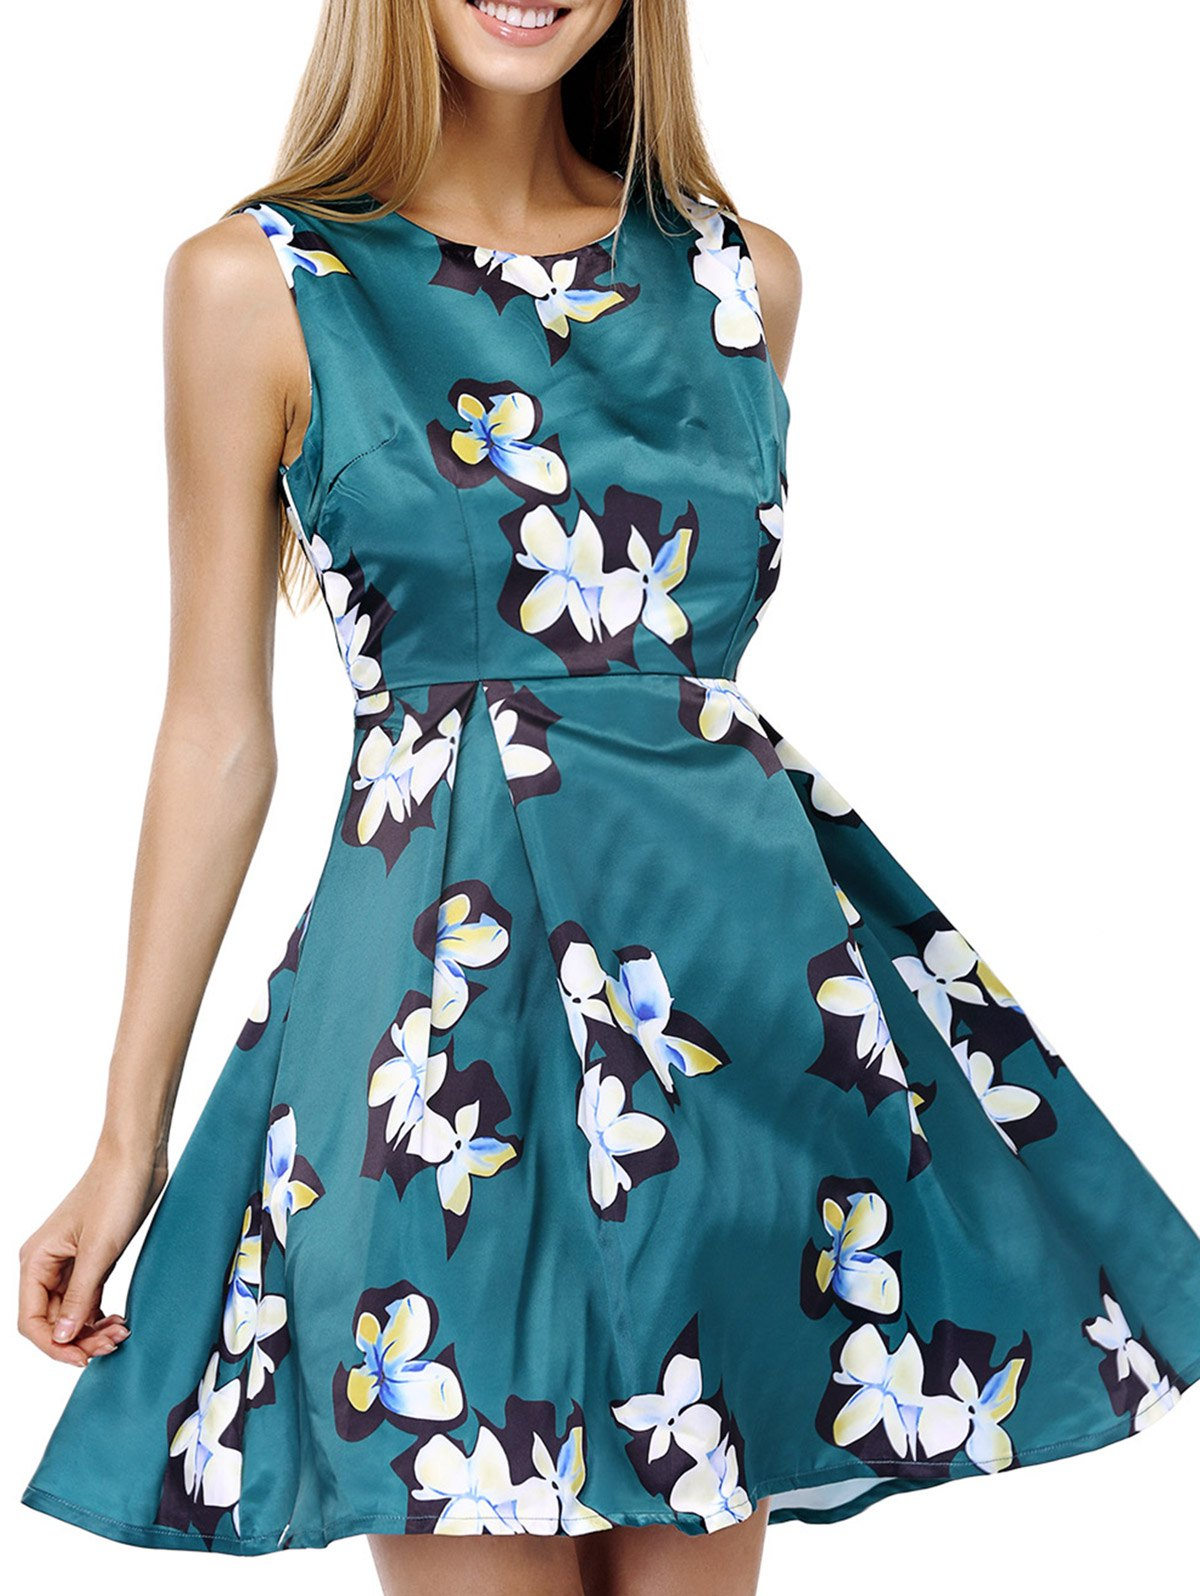 Elegant Scoop Neck Sleeveless Floral Print Fit and Flare Dress For Women - GREEN S